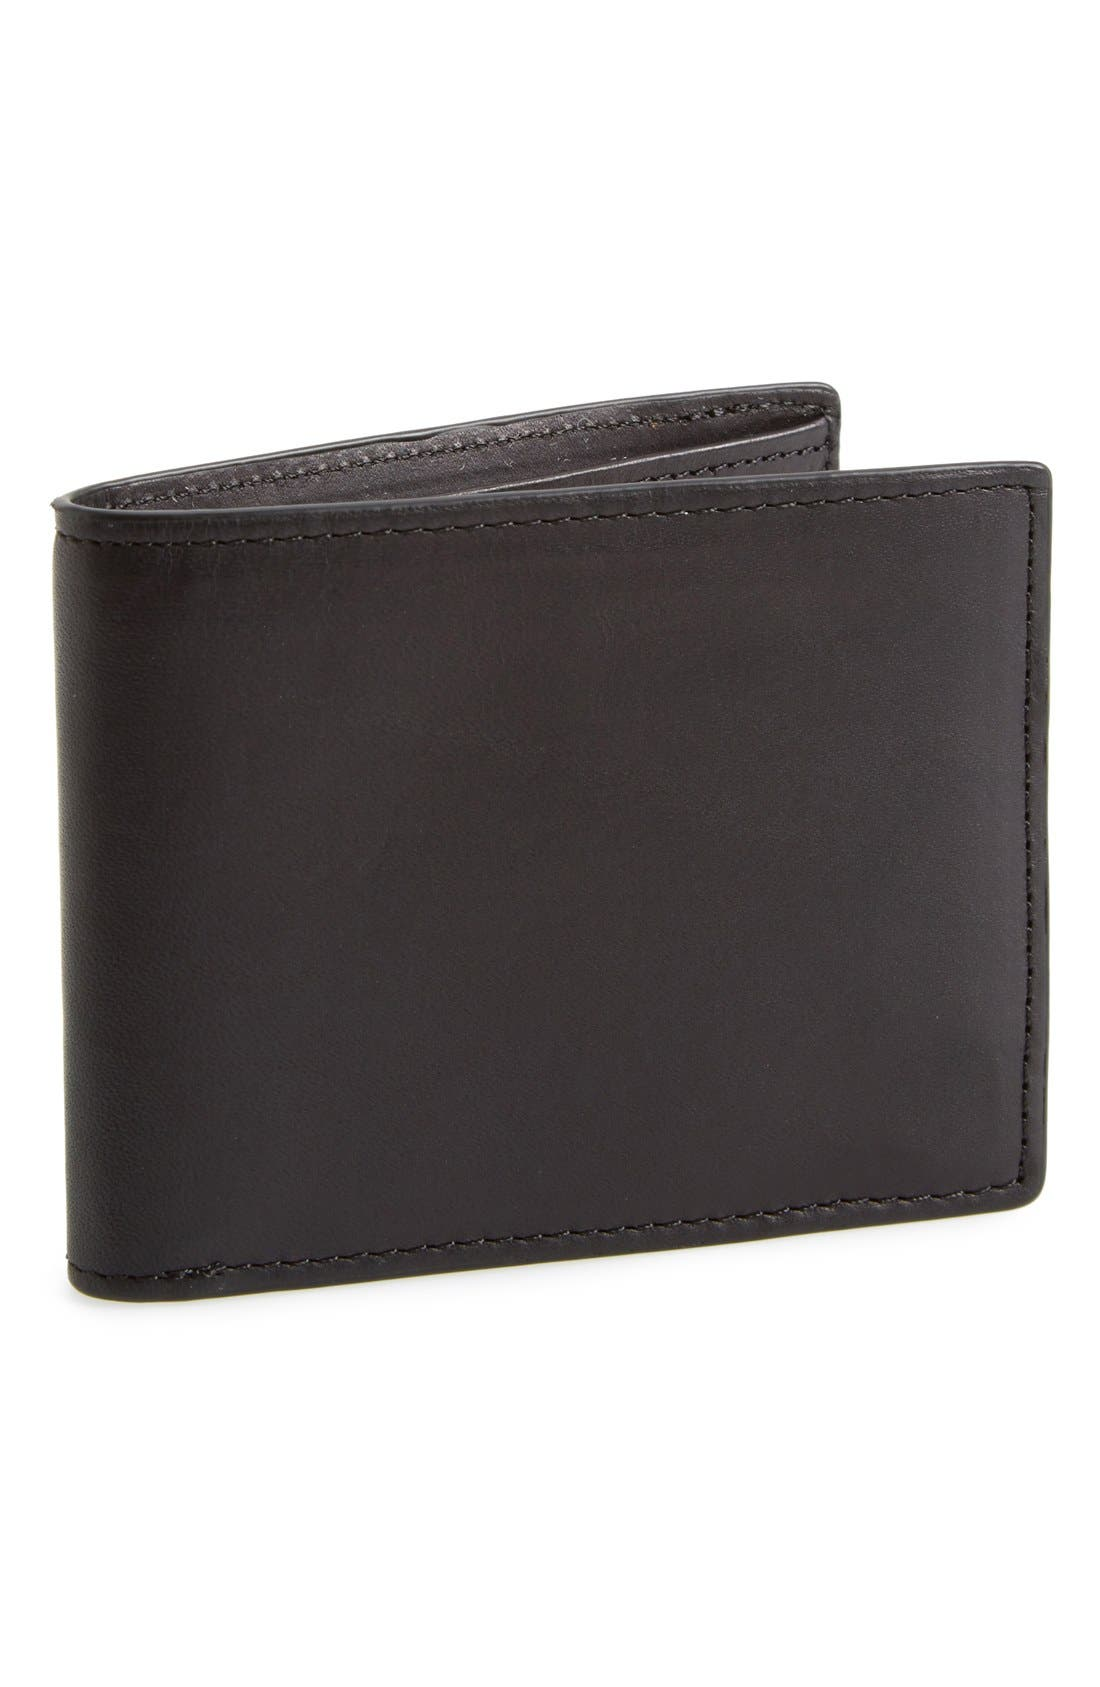 Hampshire Leather Bifold Wallet,                             Main thumbnail 1, color,                             002